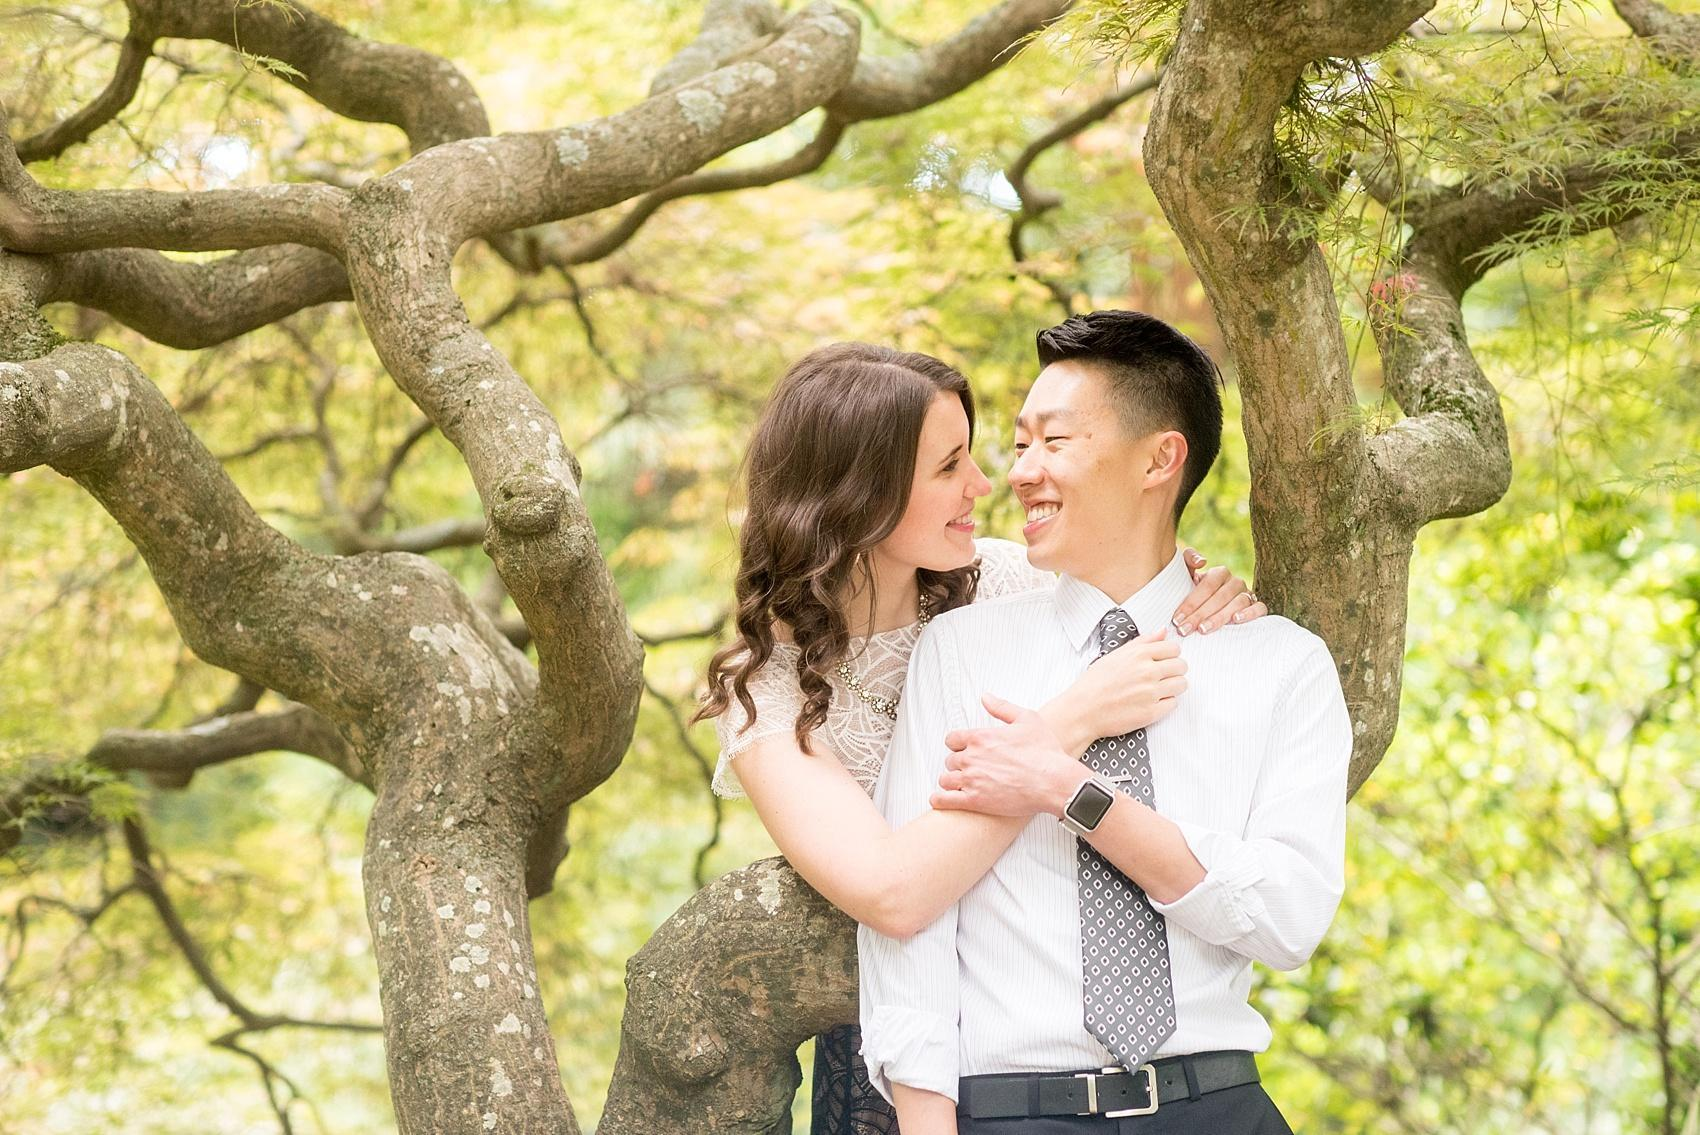 Raleigh North Carolina wedding photographer, Mikkel Paige Photography, photographs a playful engagement session at Raulston Arboretum at NC State campus.